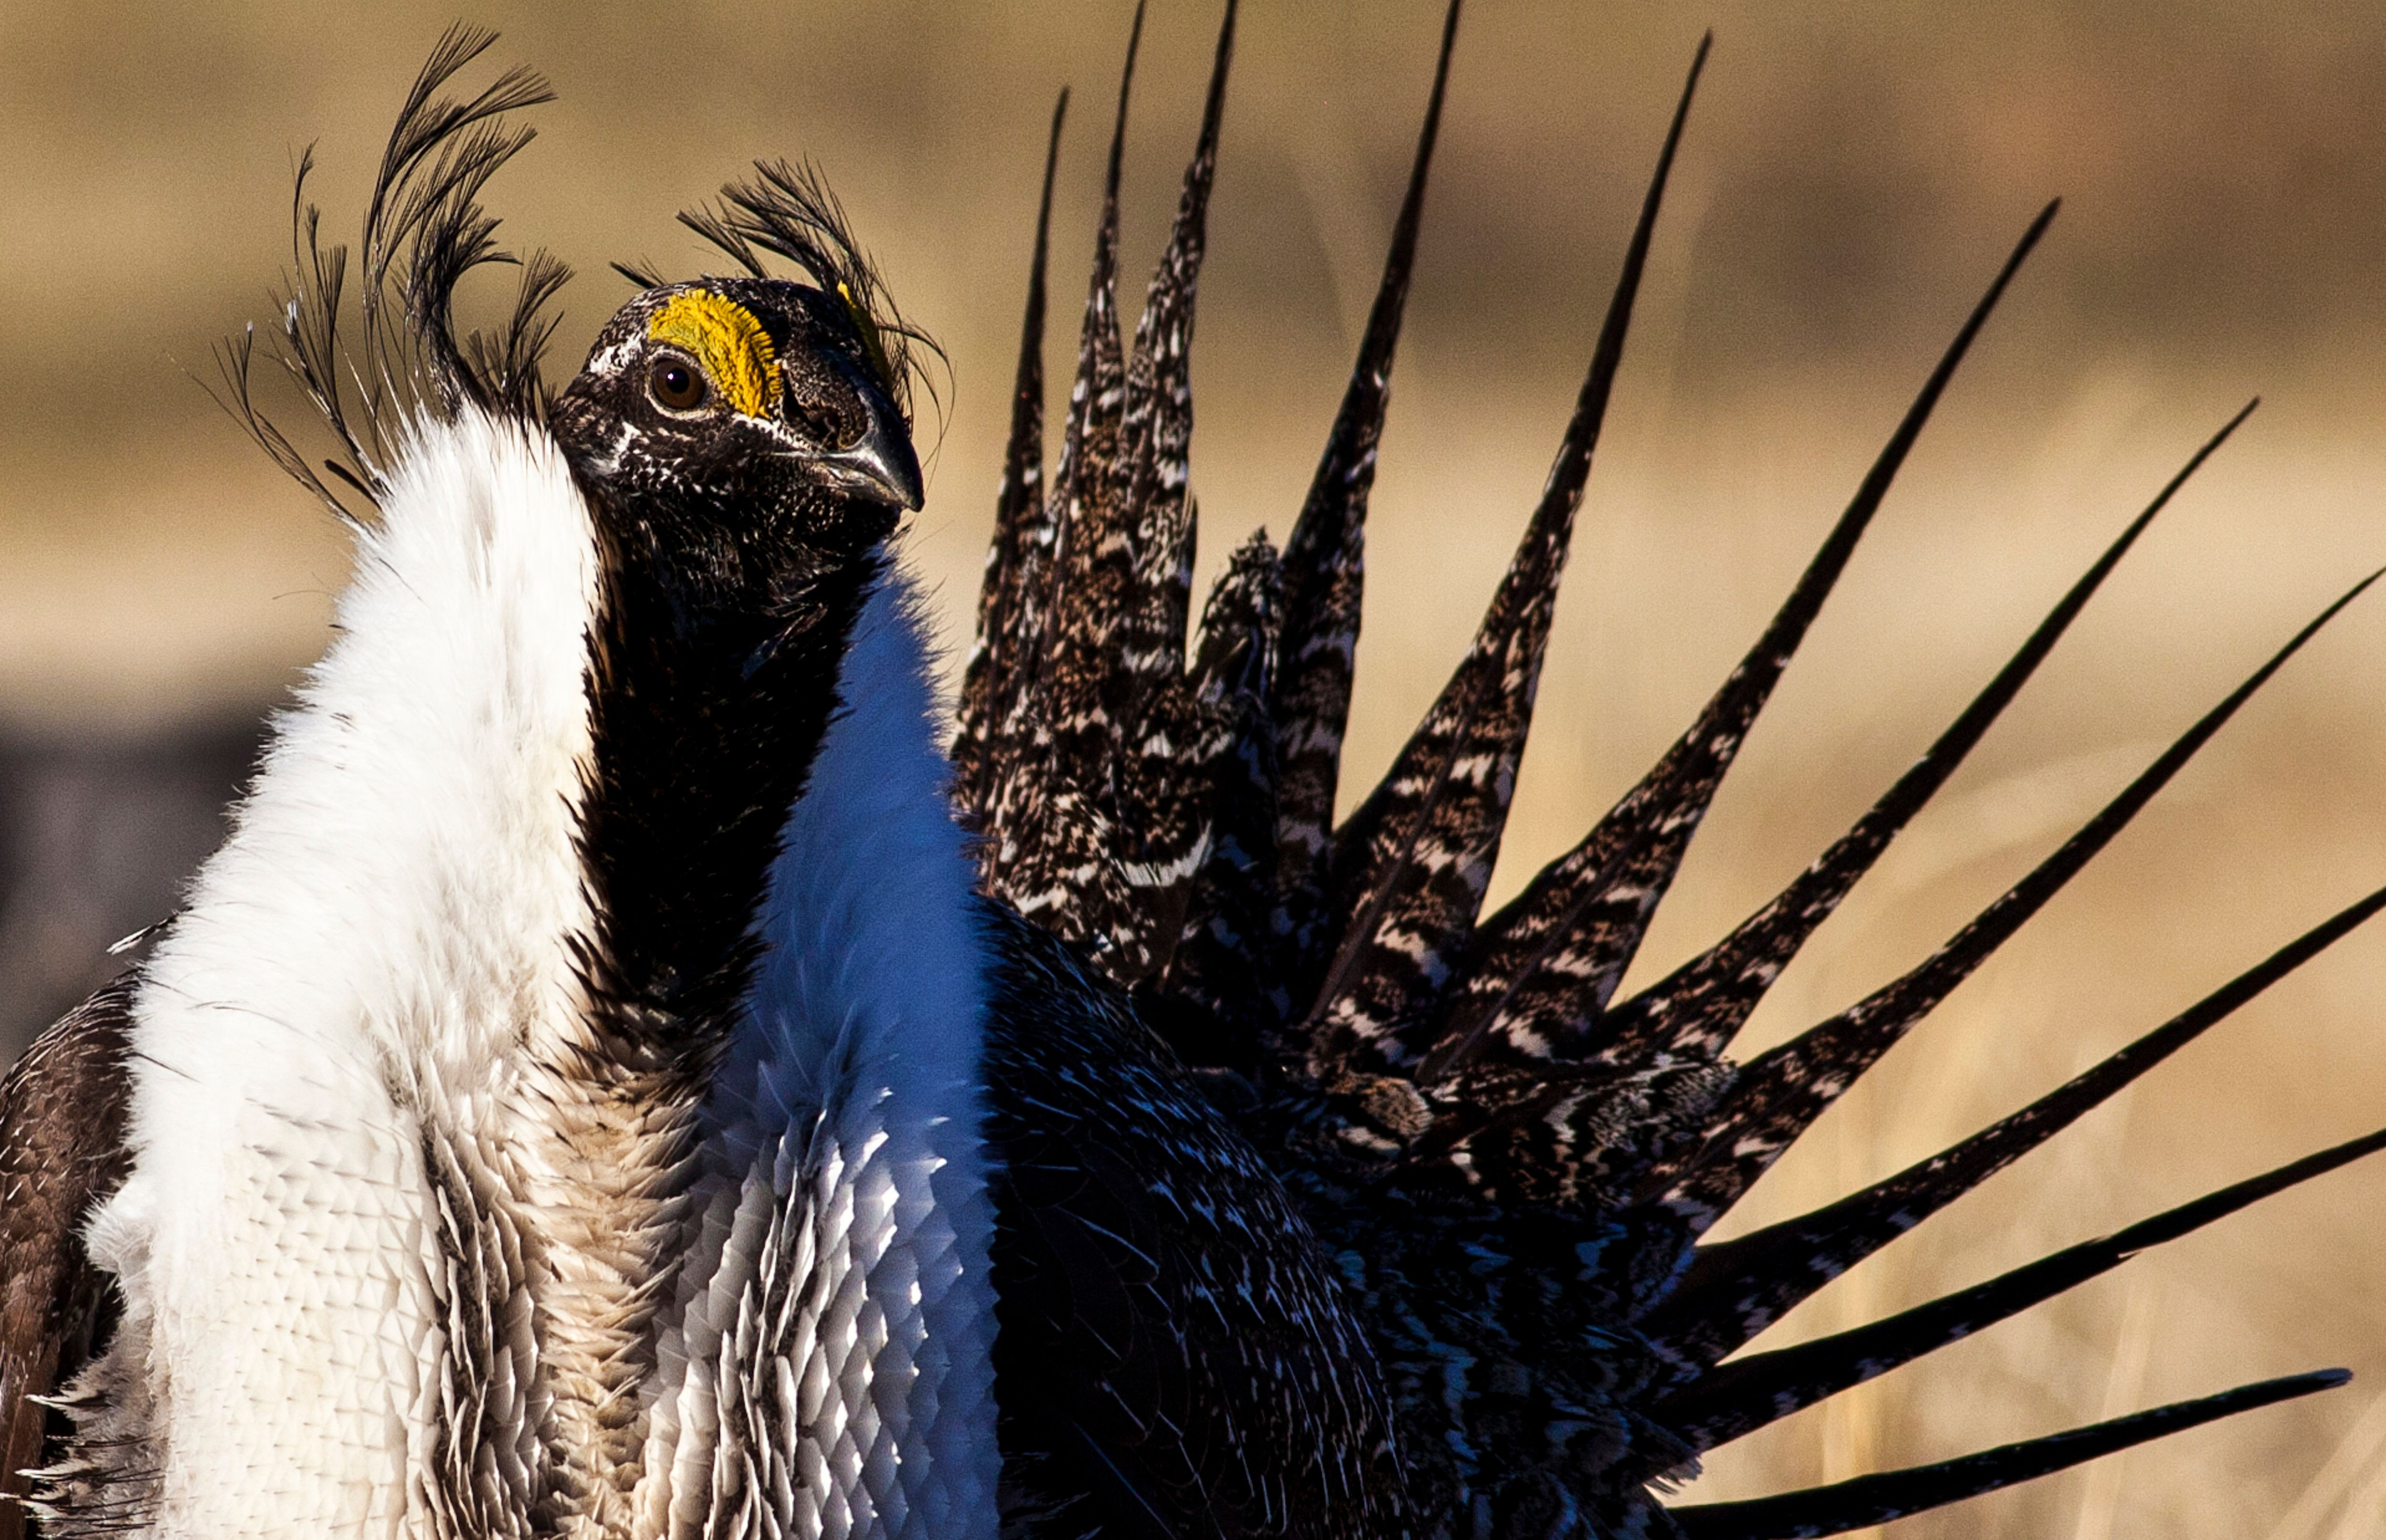 U.S. Bureau of Land Management photo shows a sage grouse in this undated photo. President Barack Obama's administration plans to protect the greater sage grouse in the western United States by limiting oil and gas development and renewable energy in the bird's habitat, under a federal plan released on May 28, 2015.    REUTERS/Bob Wick/BLM/Handout FOR EDITORIAL USE ONLY. NOT FOR SALE FOR MARKETING OR ADVERTISING CAMPAIGNS. THIS IMAGE HAS BEEN SUPPLIED BY A THIRD PARTY. IT IS DISTRIBUTED, EXACTLY AS RECEIVED BY REUTERS, AS A SERVICE TO CLIENTS